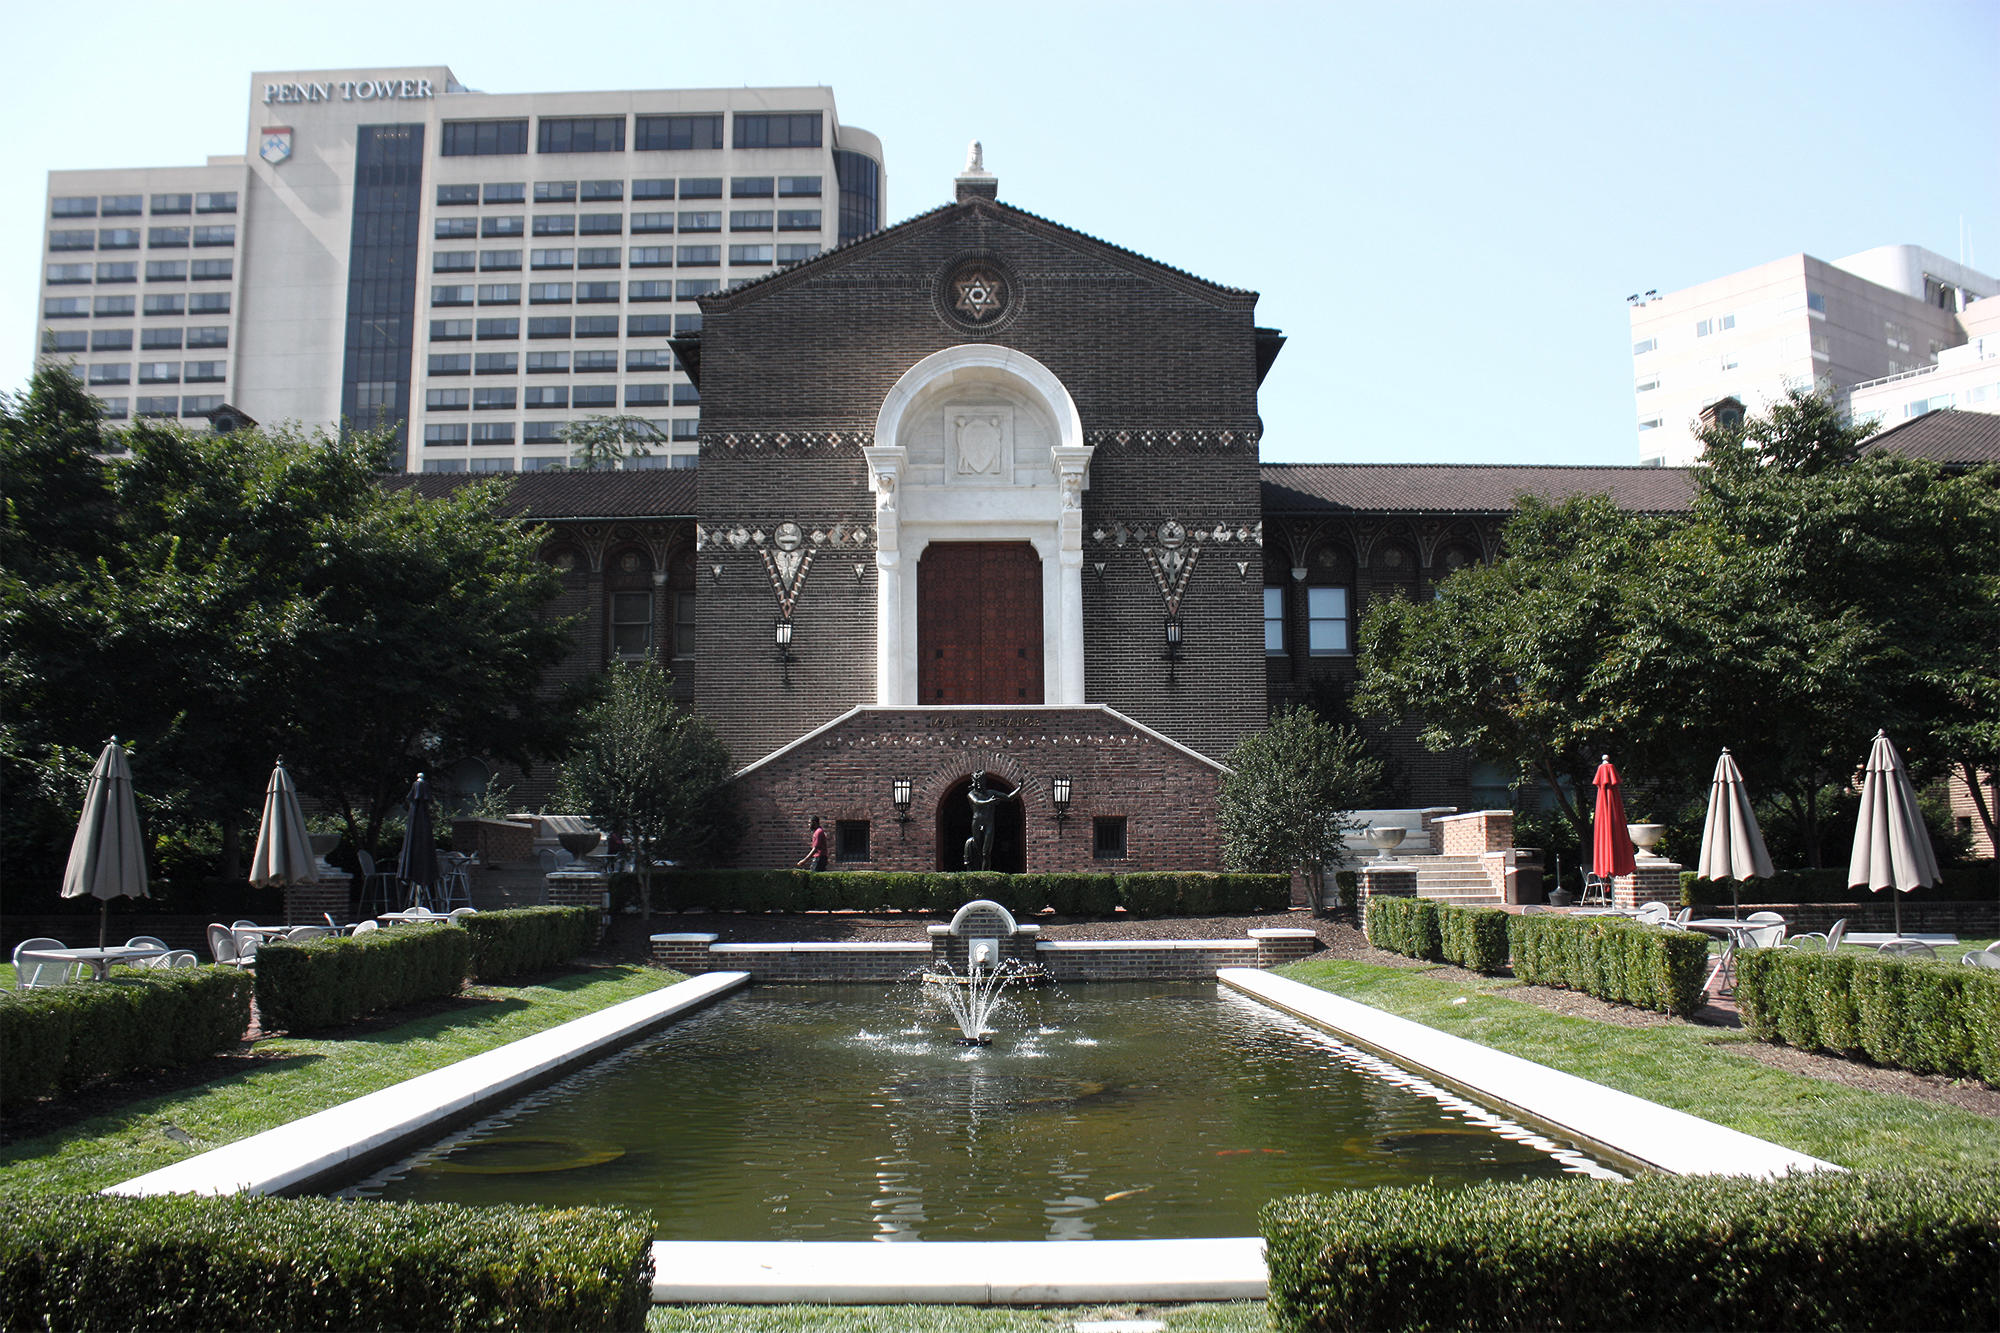 The exterior of the Penn Museum